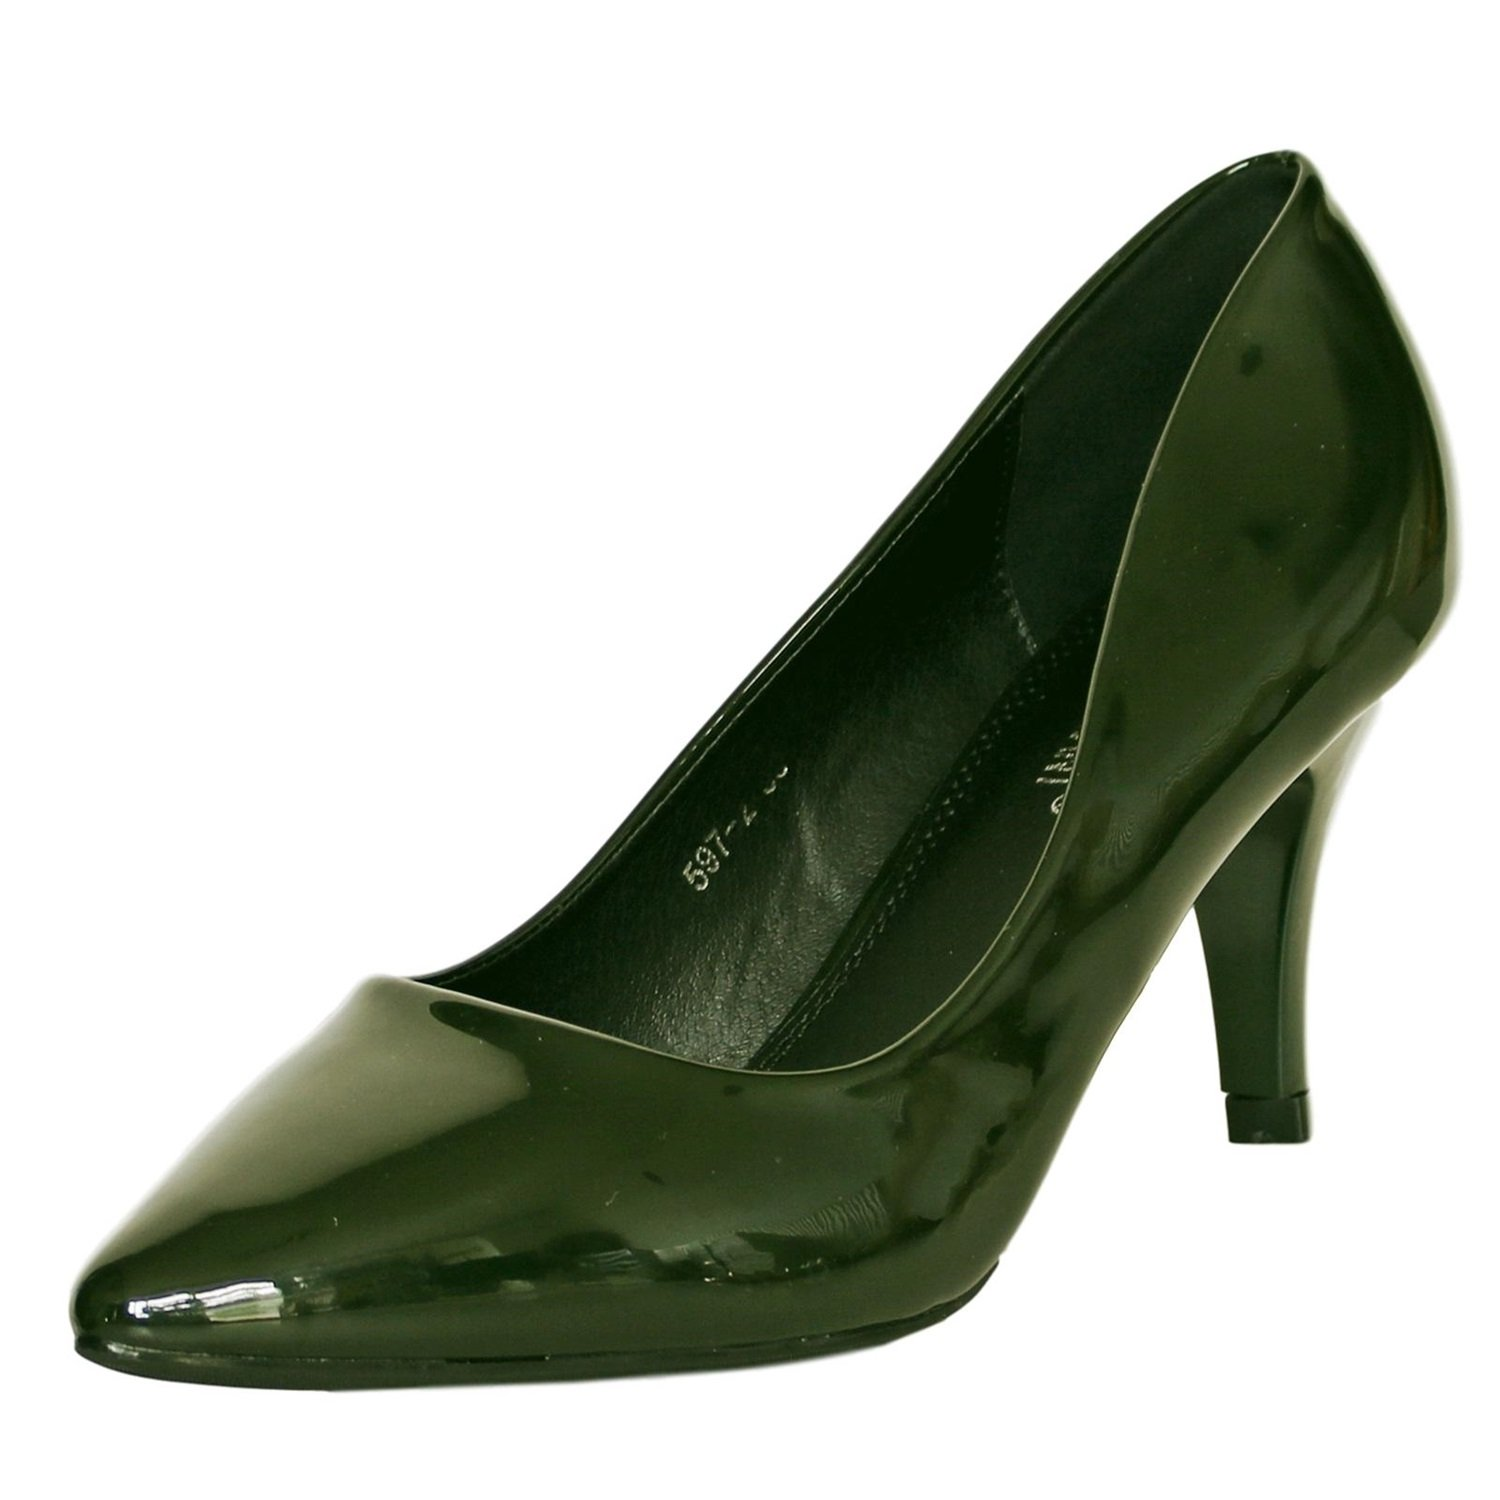 Rock on Styles Ladies Women Patent Low Mid Heel Evening Party Office Casual Court Shoes Pumps Size-5972